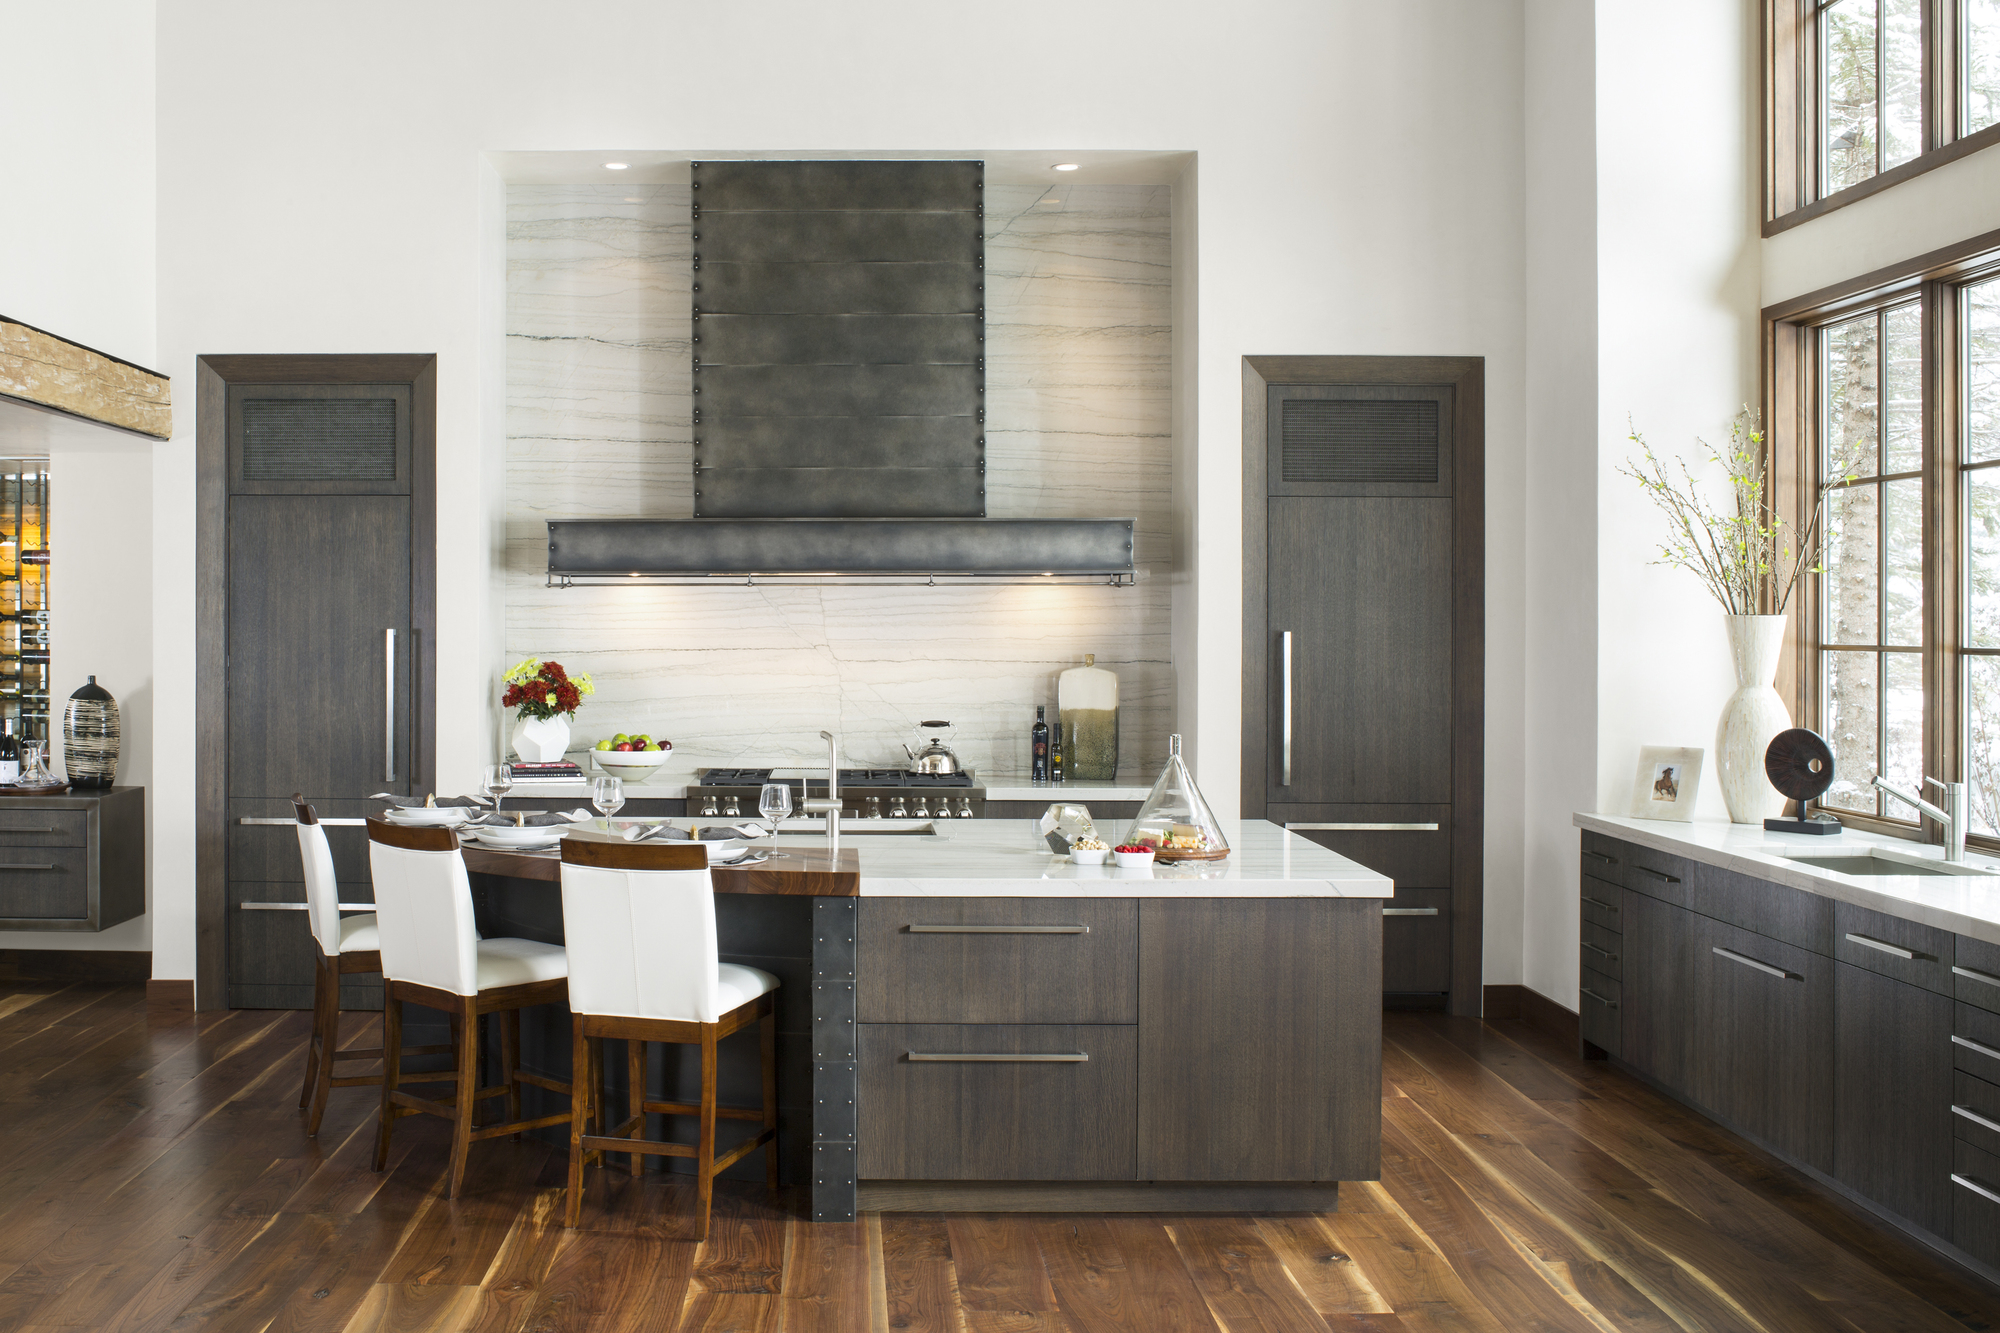 Gallery Of The World S Most Prominent Kitchen Design Contest Is Now Accepting Entries 1